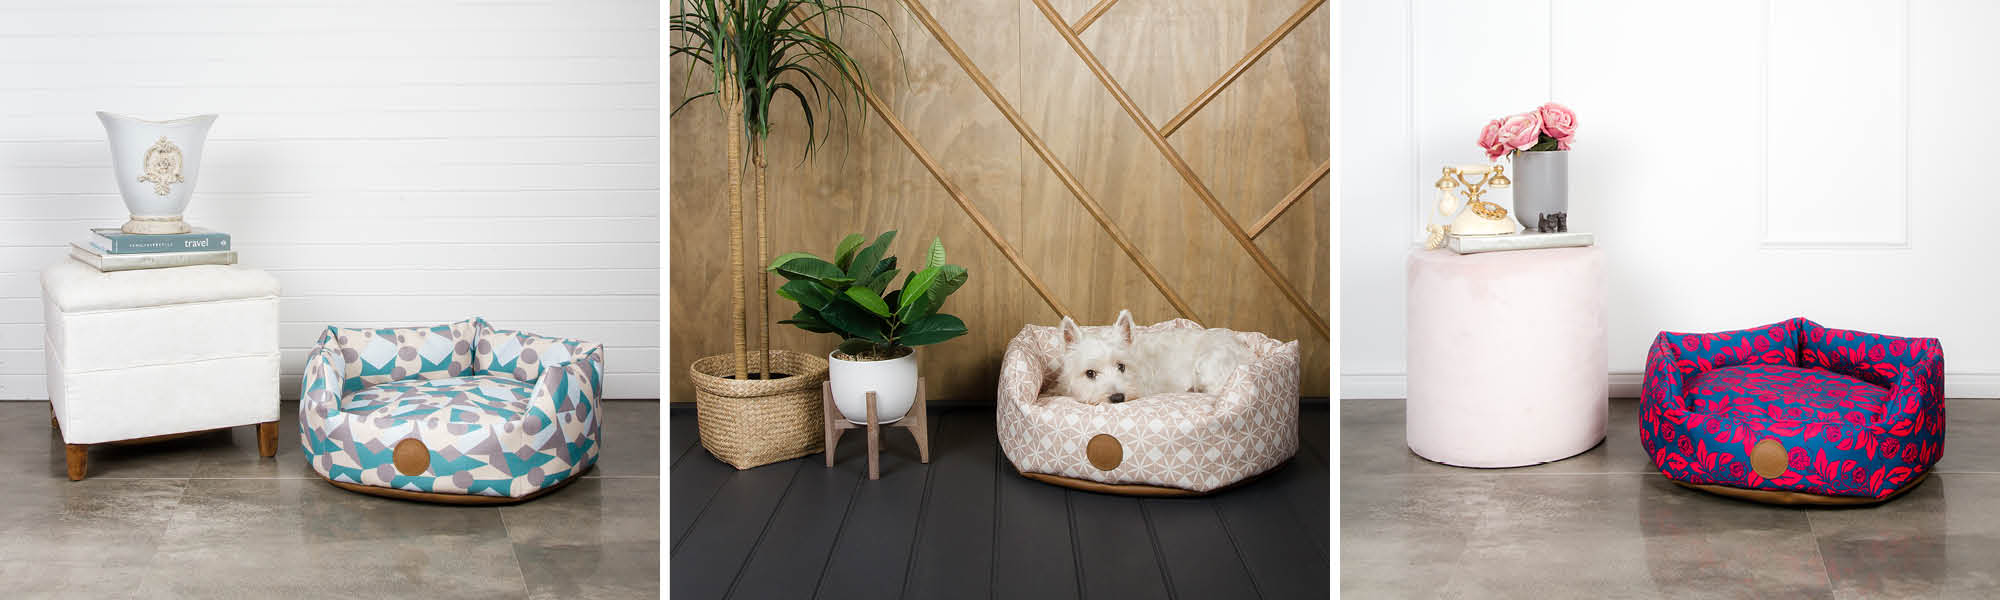 Pooky & Boo Dog Beds